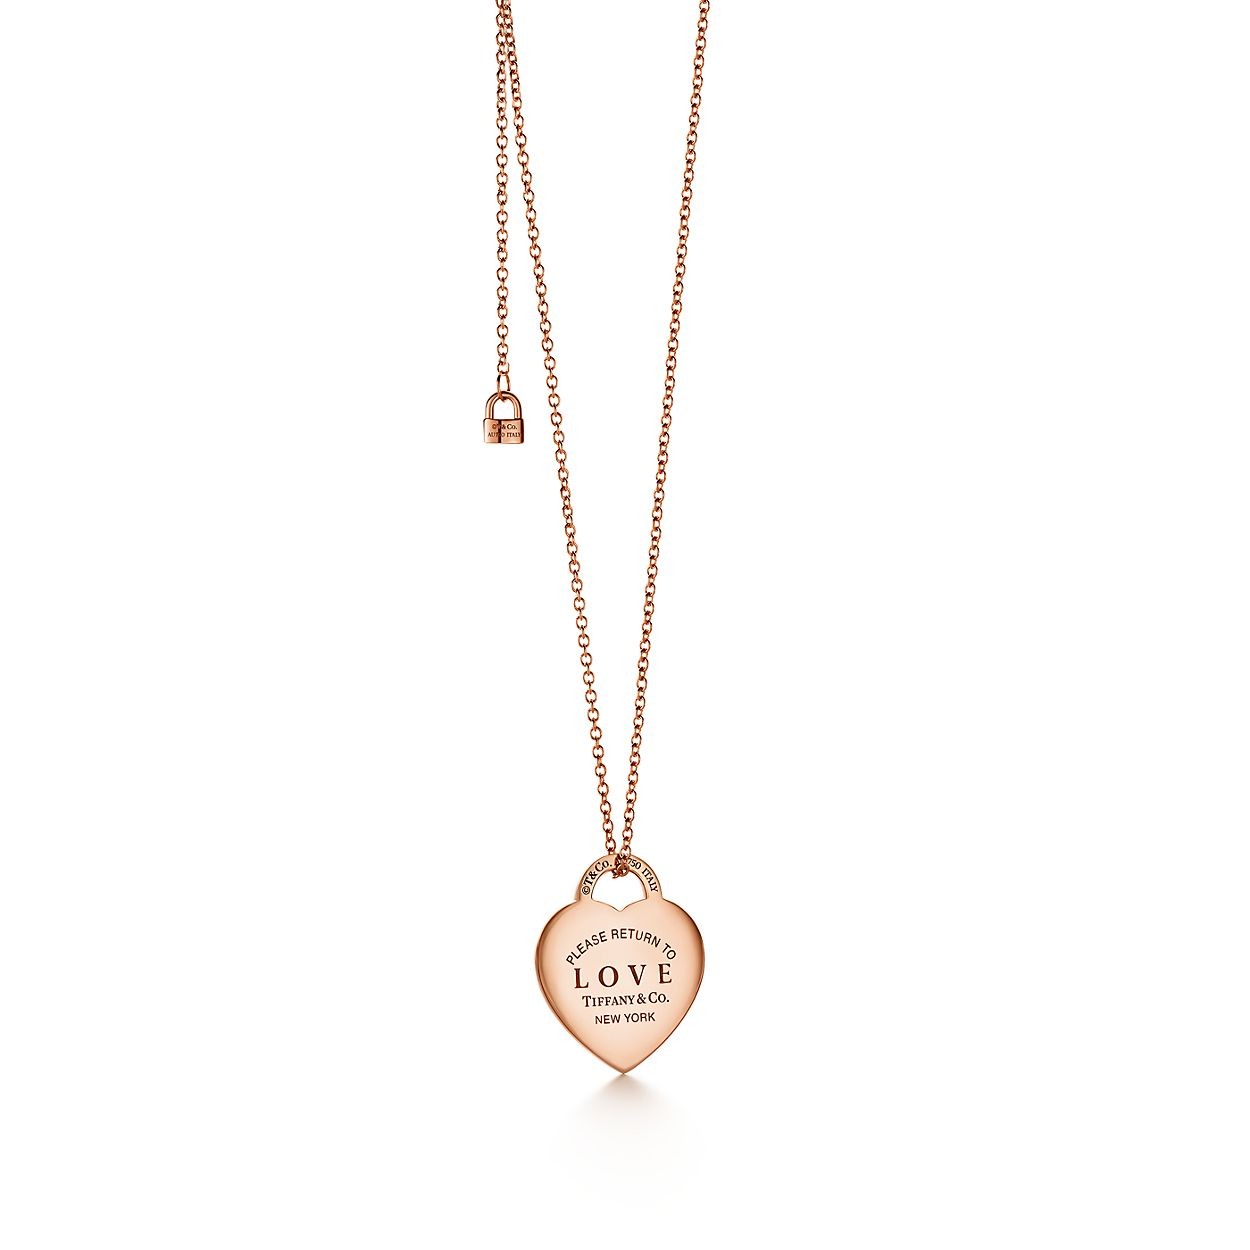 32399c442 Return To Tiffany Large Heart Tag Pendant In 18k Rose Gold With